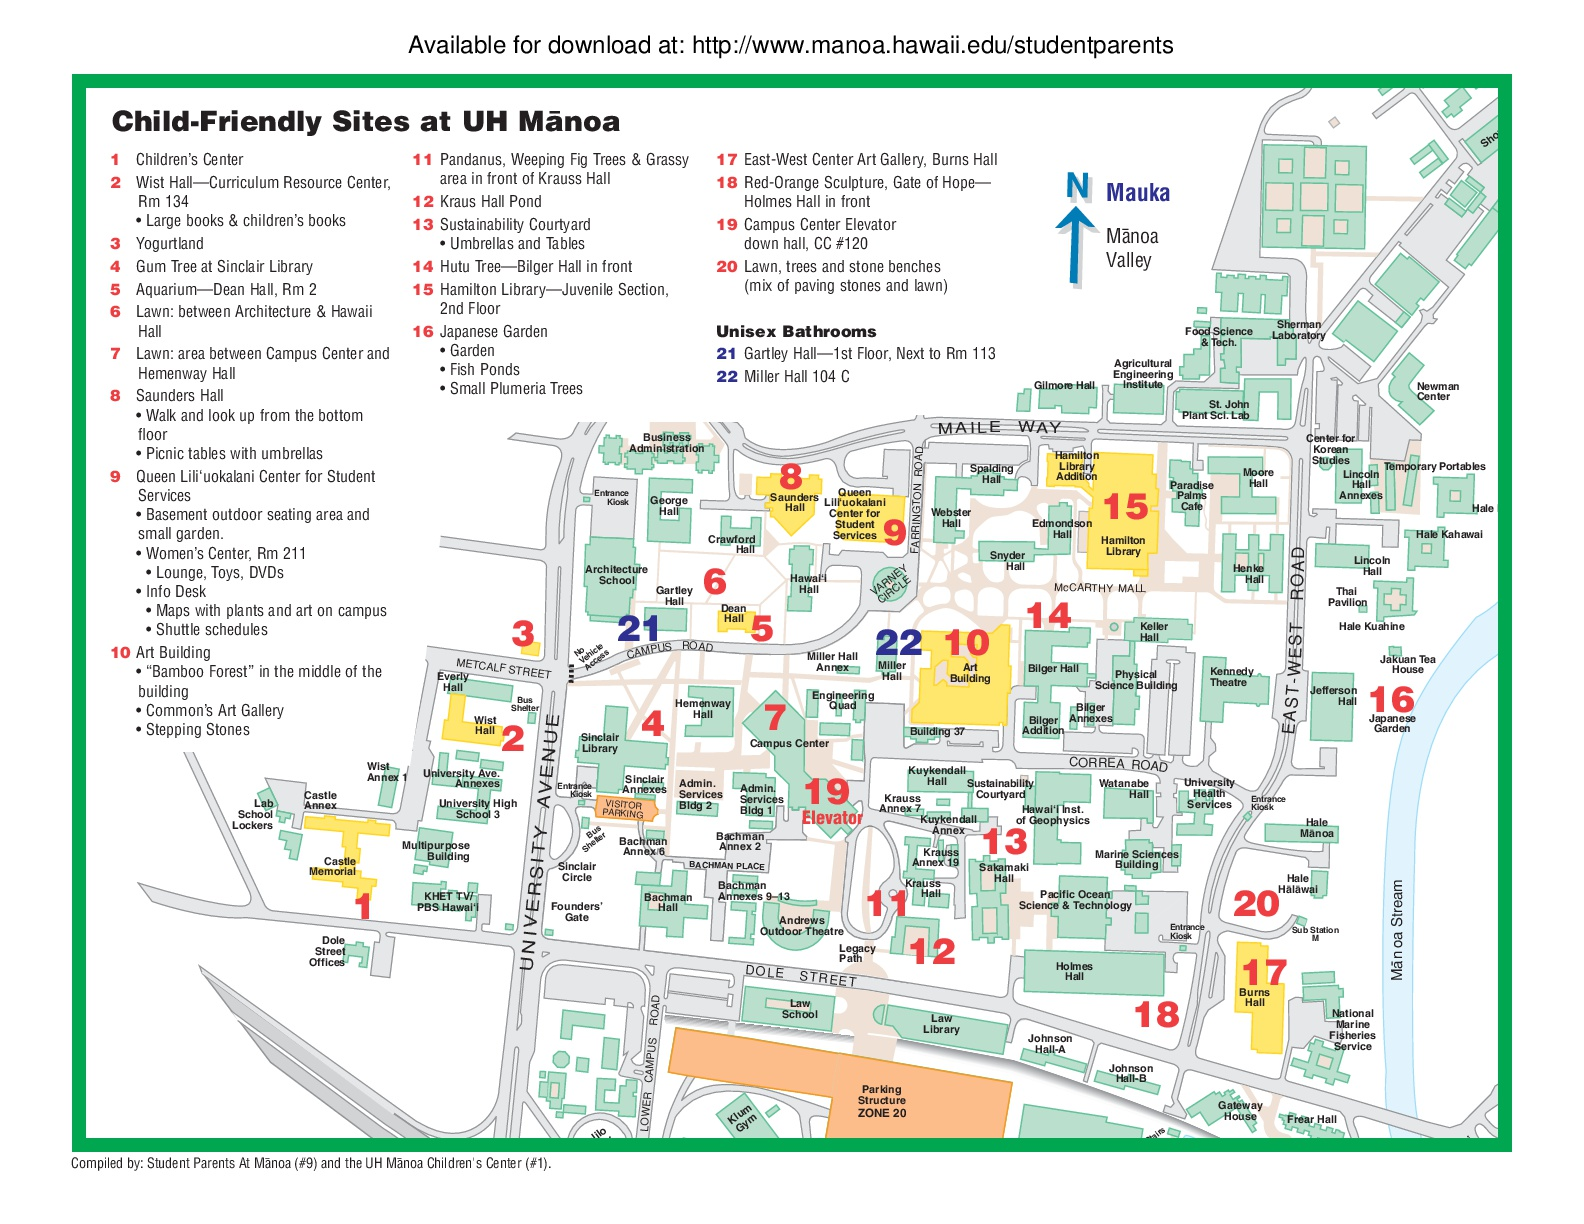 ChildFriendly_map9'09-4 UH Manoa-001